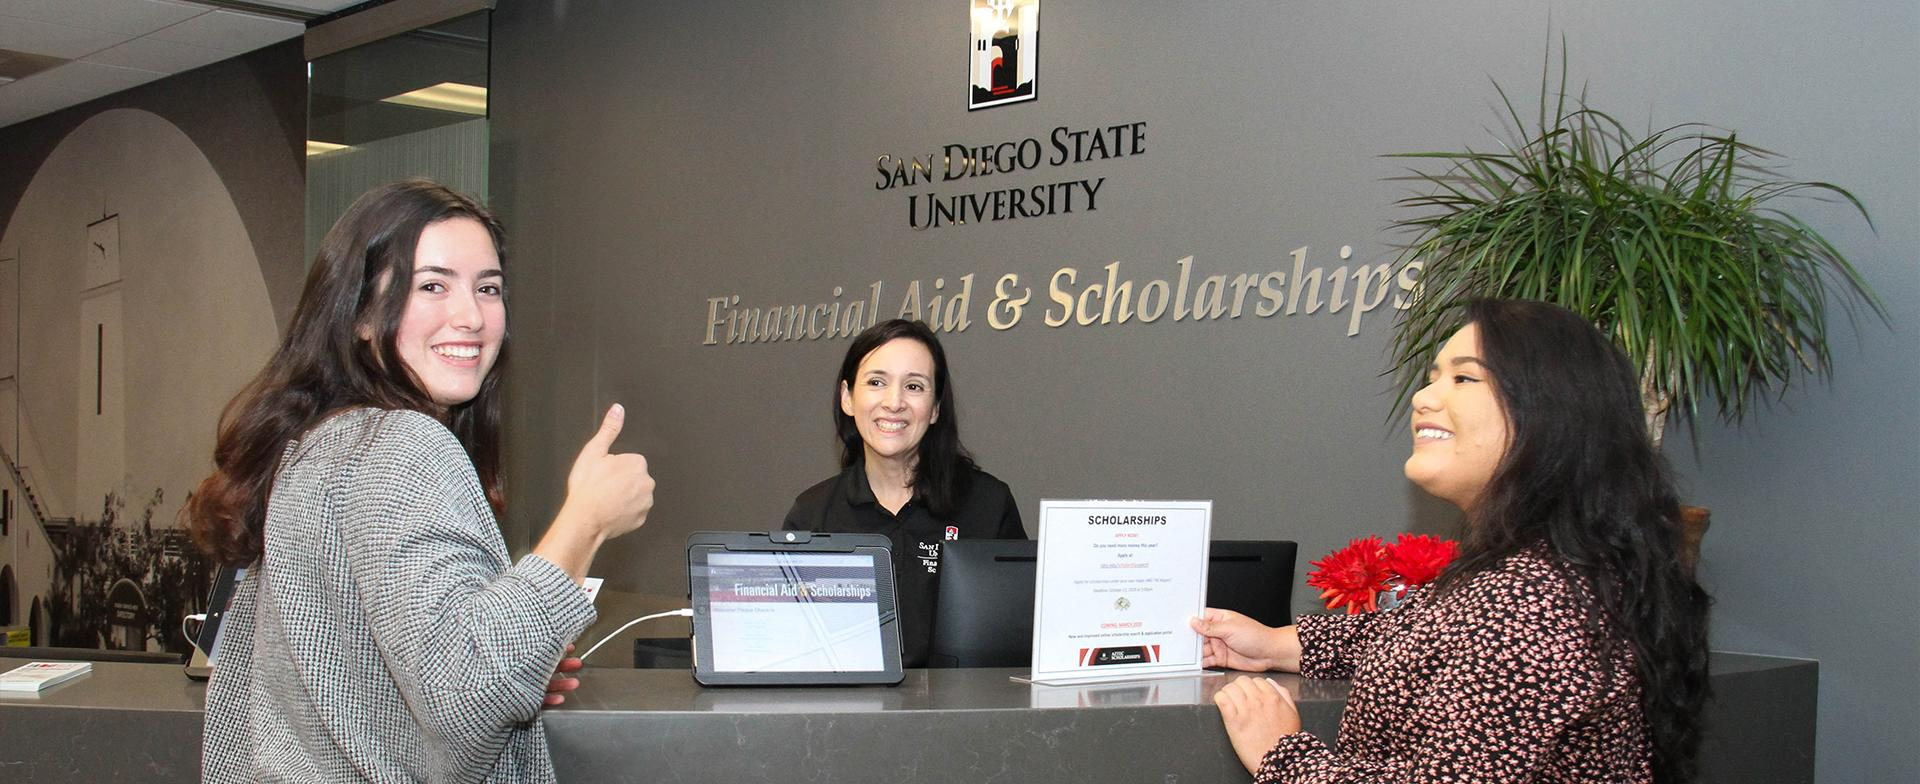 photo of students at front desk in financial aid office